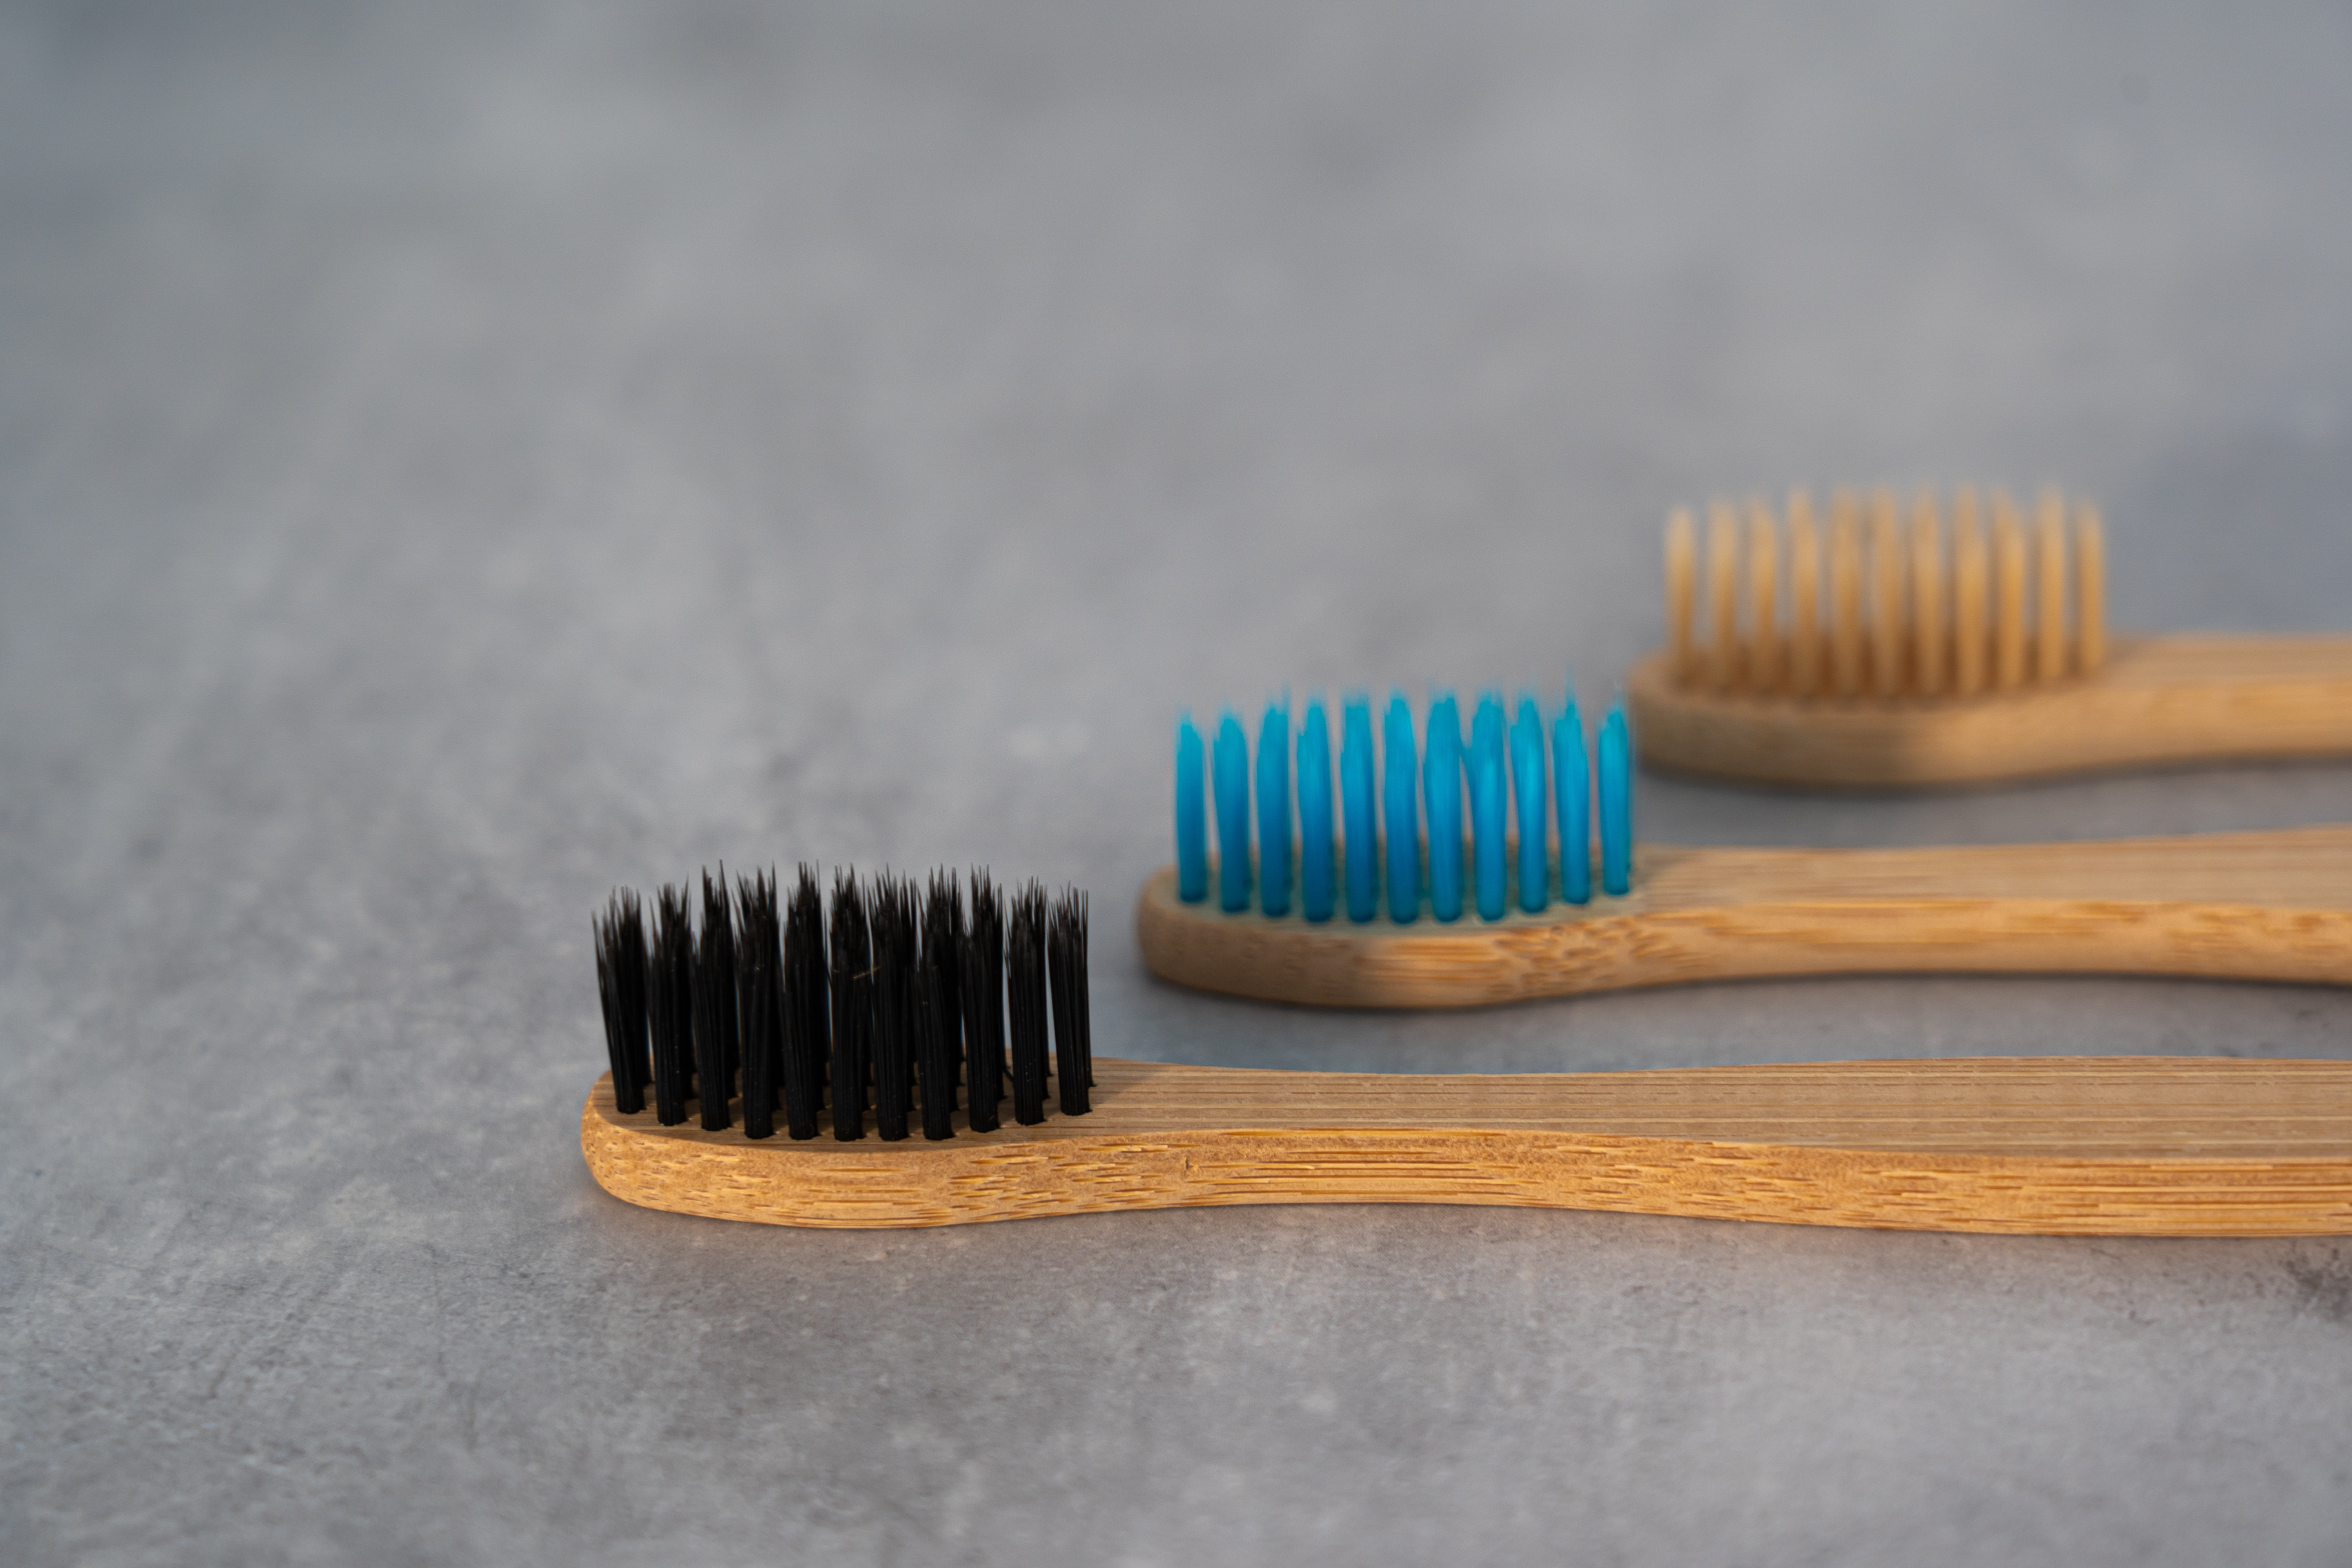 a close up of a toy toothbrush